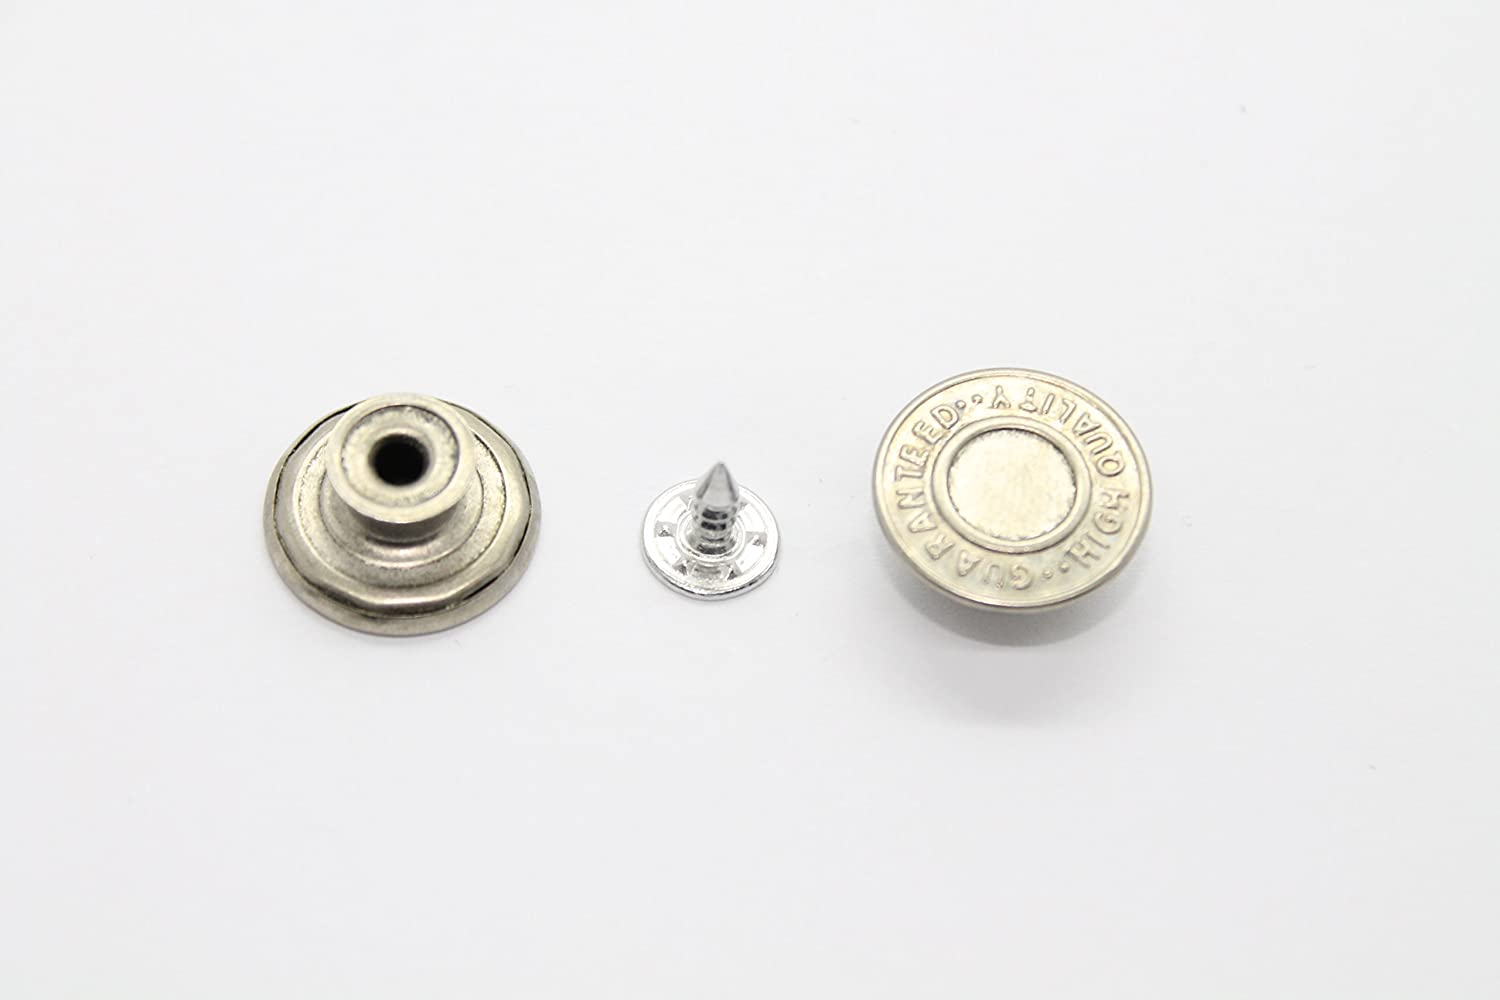 8 x Jean Stud Buttons - 17mm Wide - Silver Colour - Replacement for Missing Buttons on Jeans, Jackets, Clothes By Trimming Shop Trimming Shop London Ltd